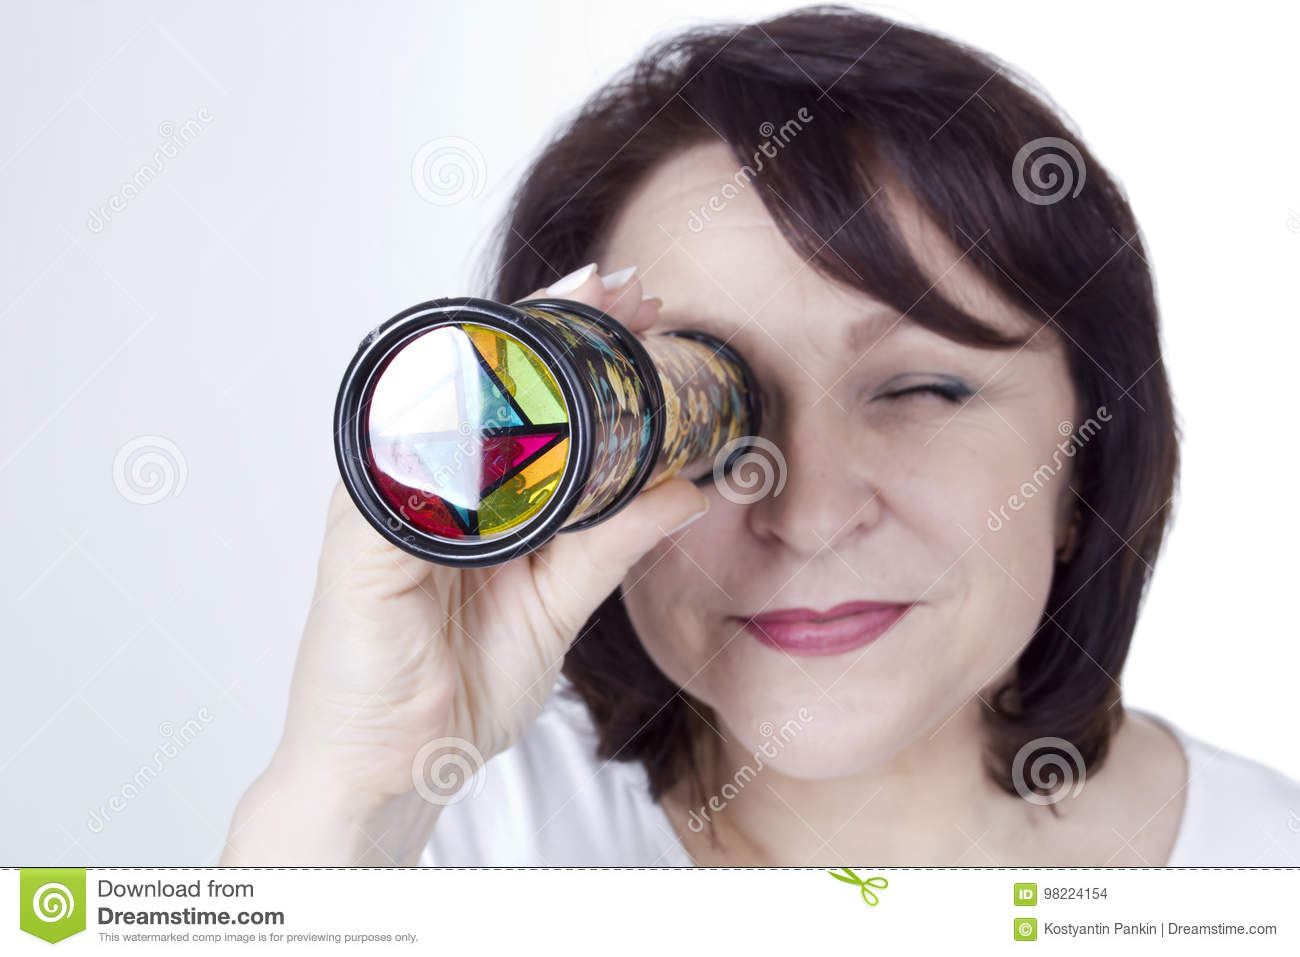 Adult woman looking into a kaleidoscope